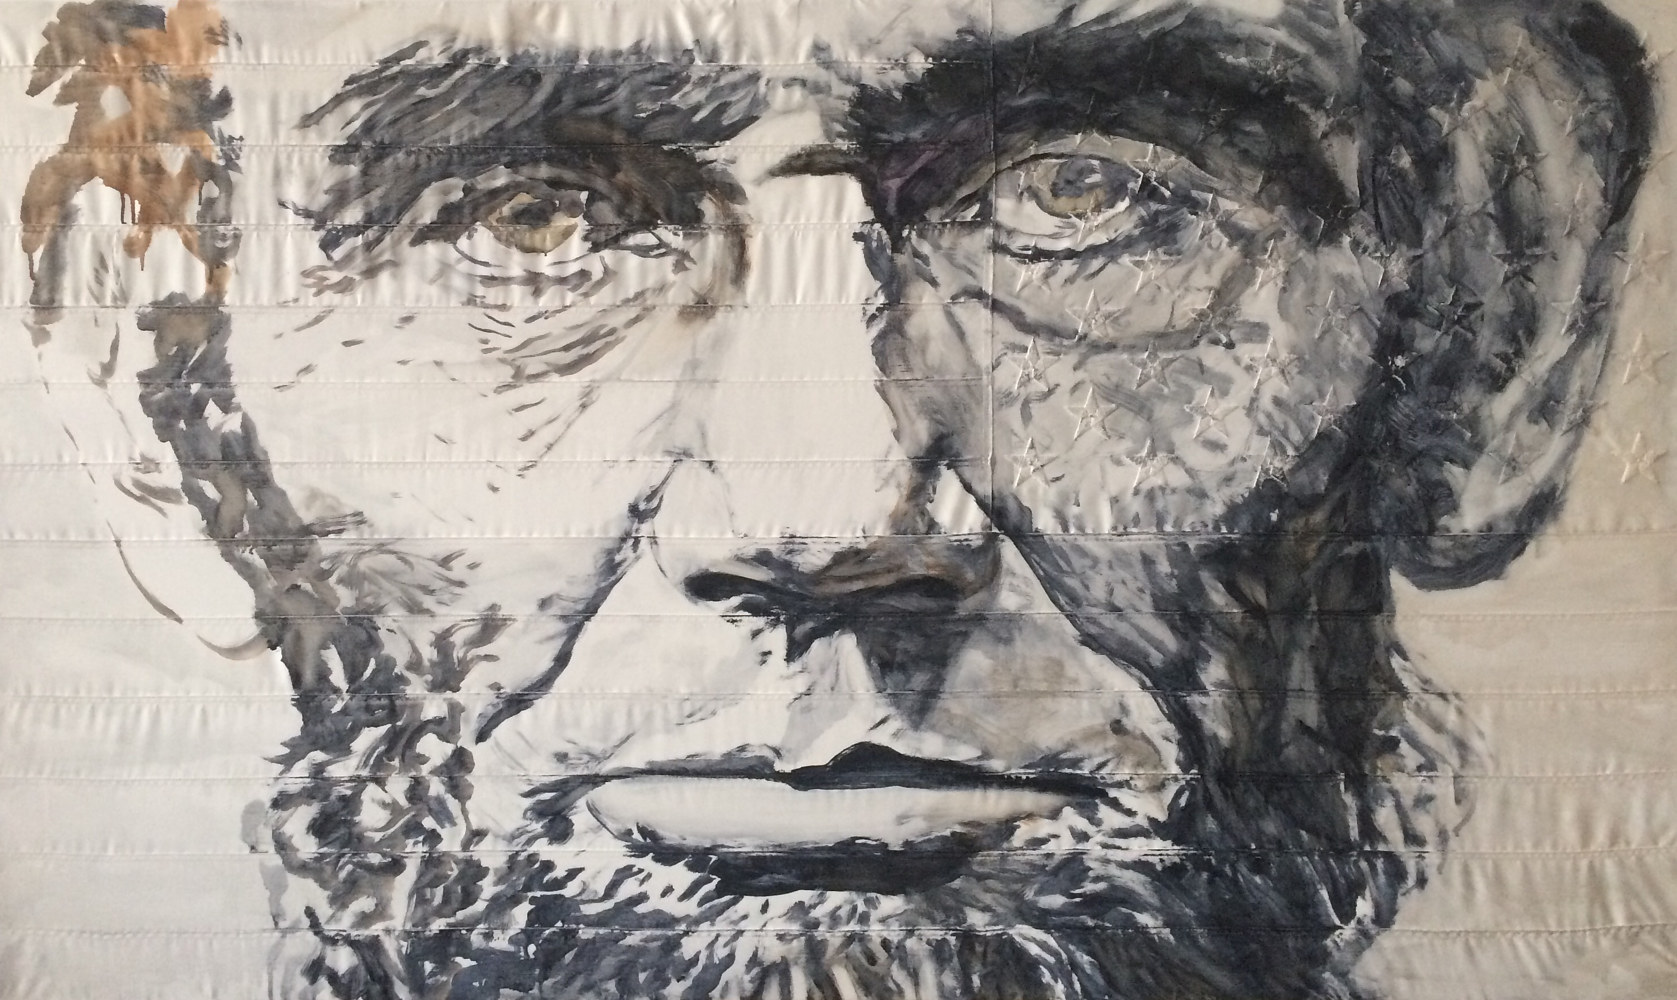 Oil painting Uncle Abe, 3 x 5, Oil on sewn and embroidered canvas by Edward Miller